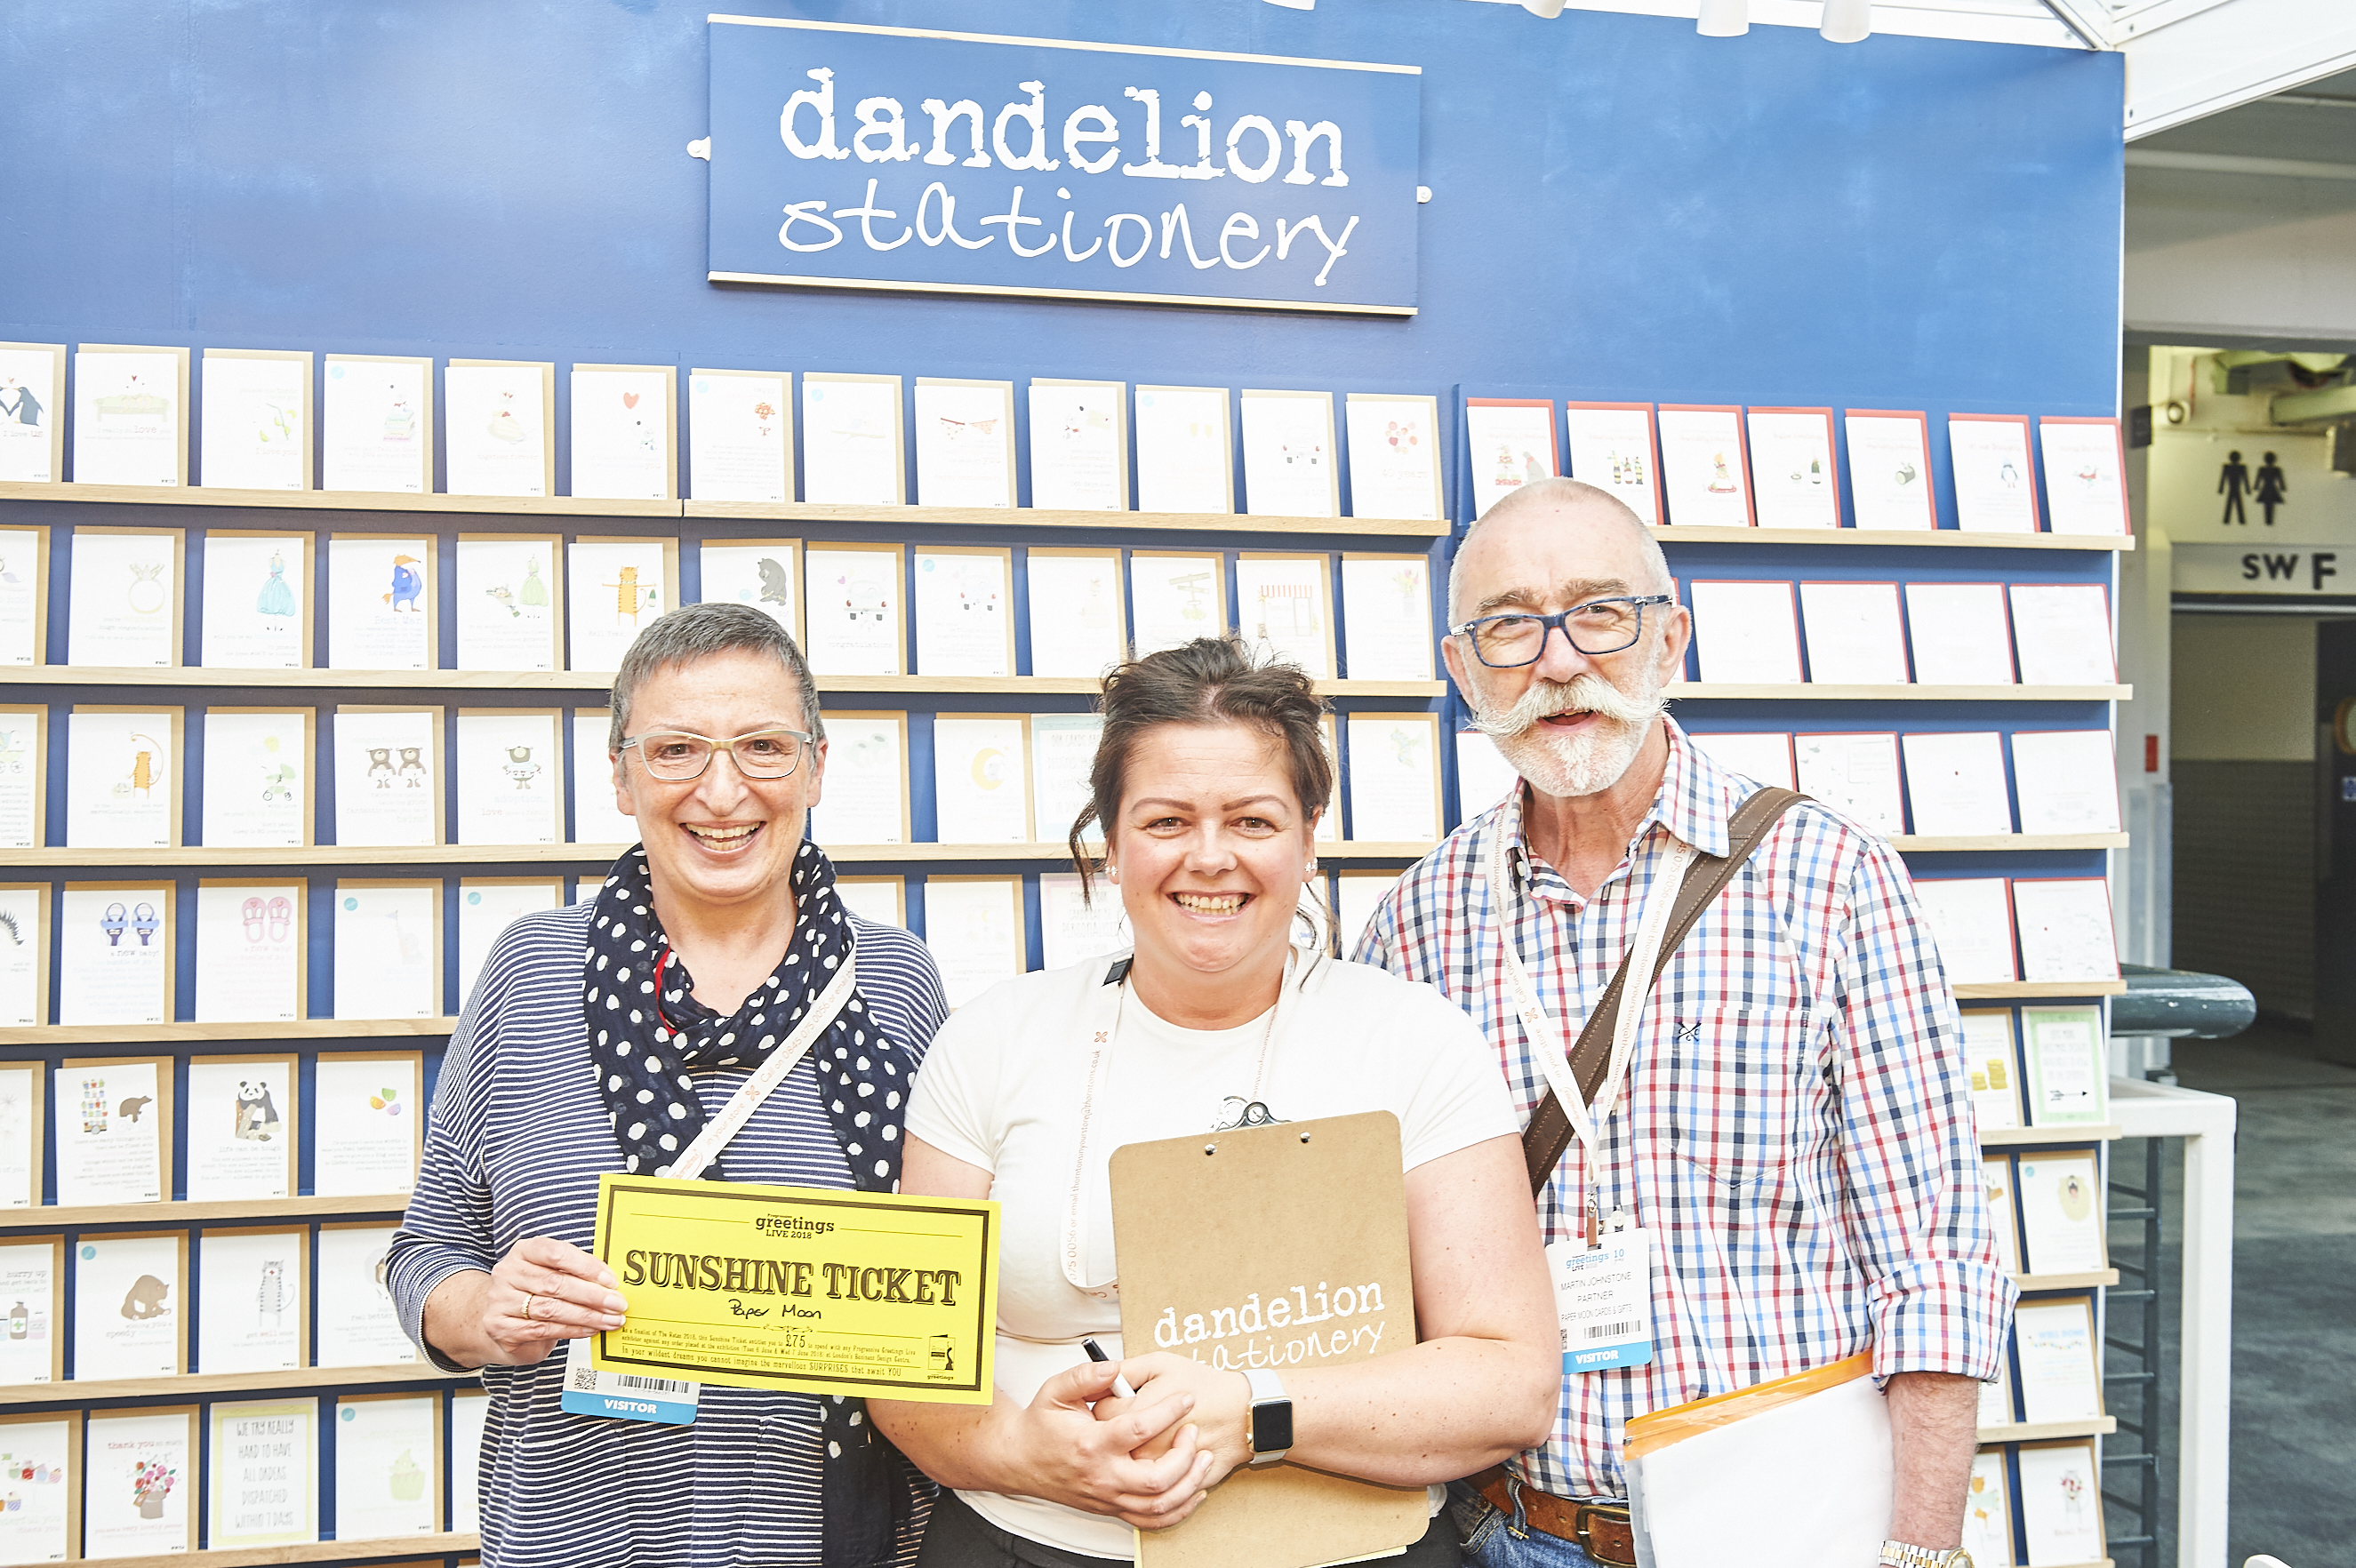 Above: Next June 5-6 sees PG Live 2019 welcome card retailers of all types, such as Jo (left) and Martin Johnstone of Paper Moon, Sidmouth who spent their Sunshine Ticket with Dandelion Stationery.